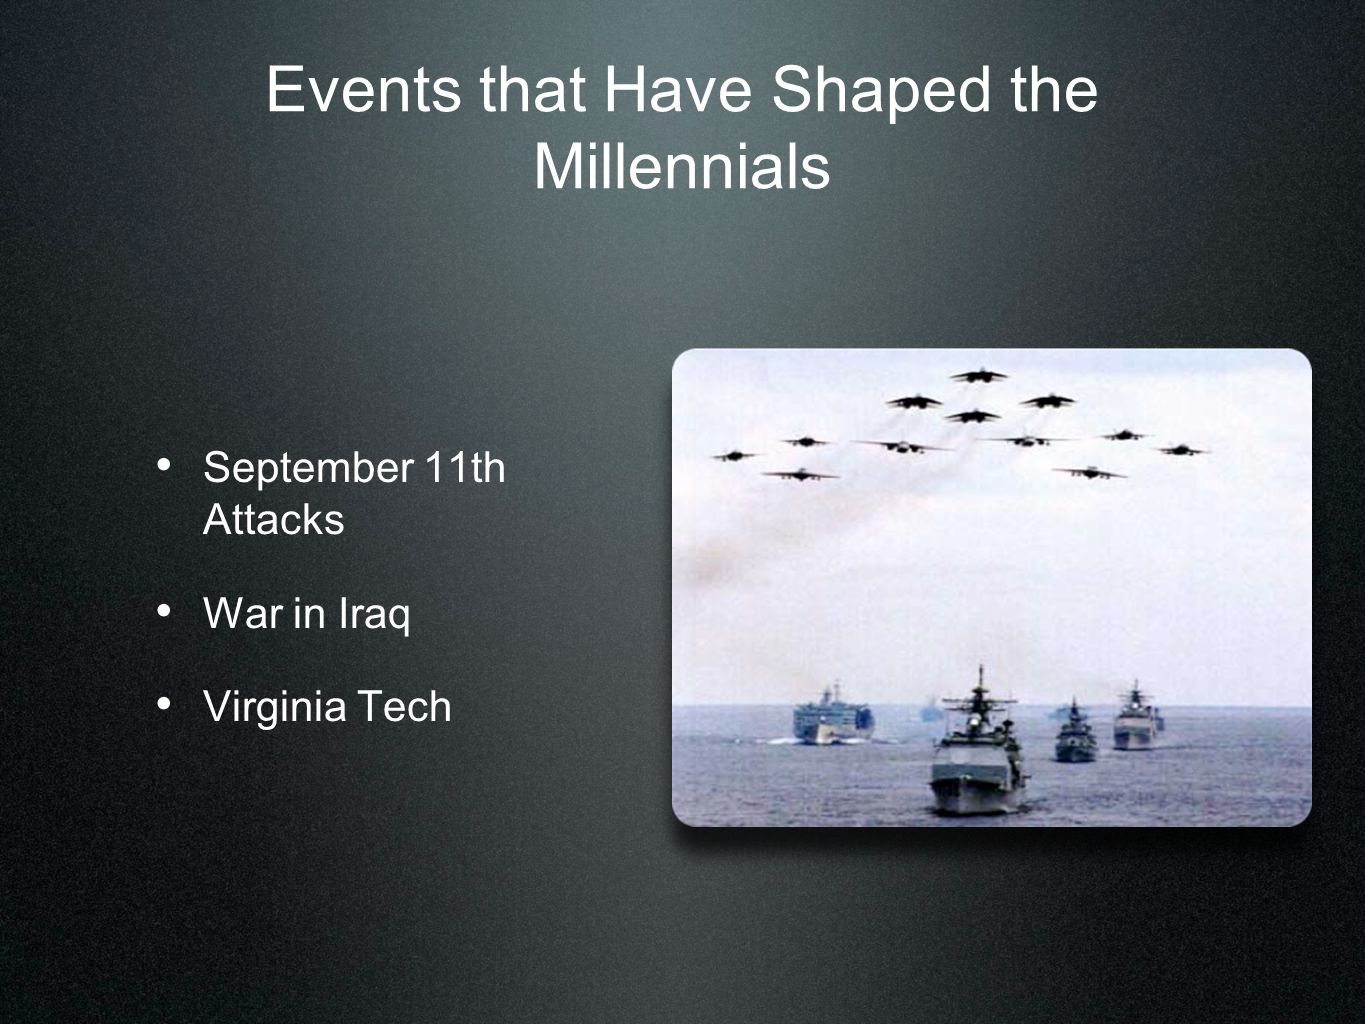 Events that Have Shaped the Millennials